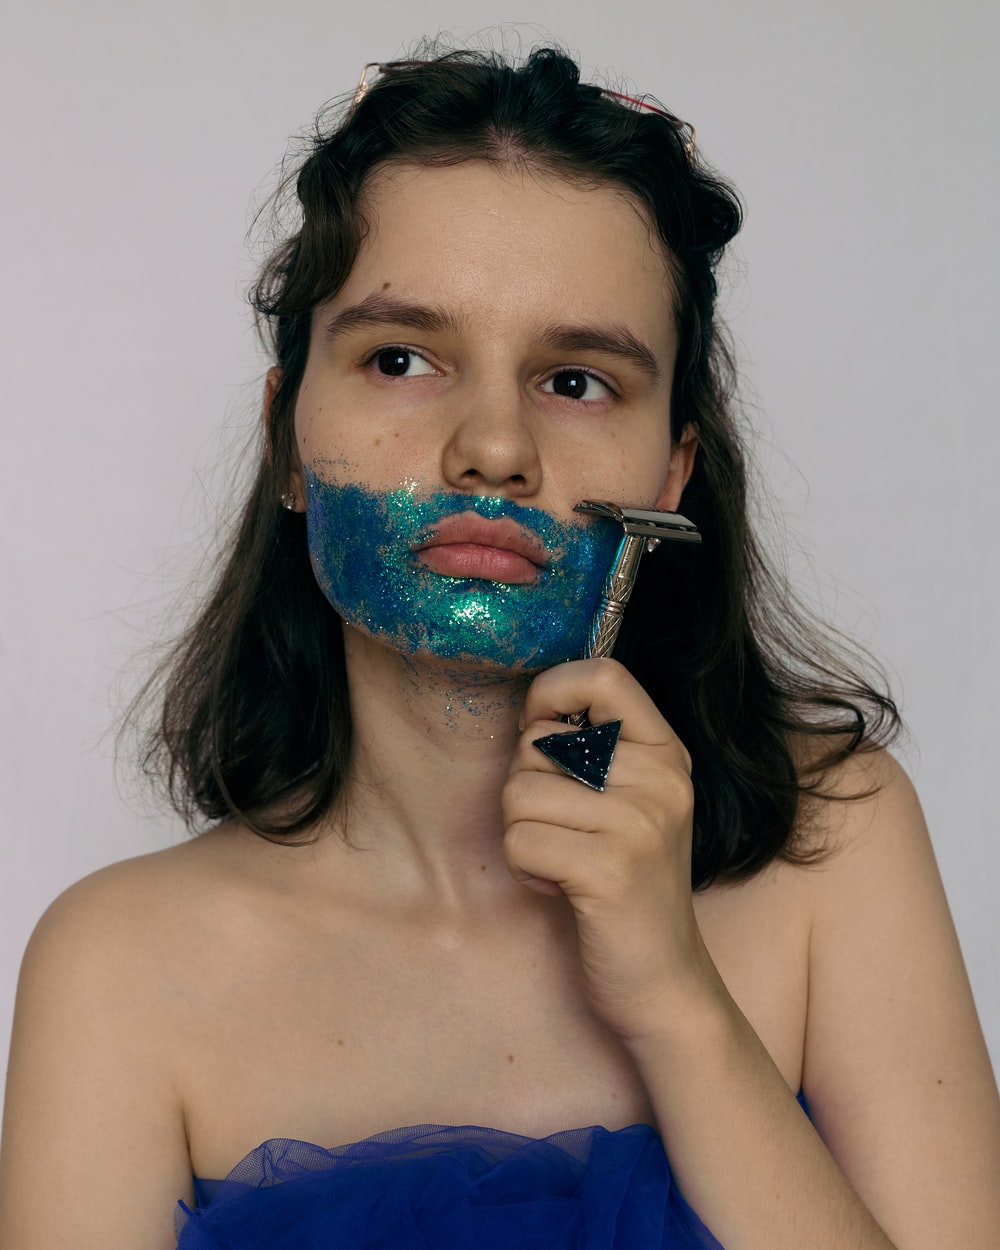 woman with blue and green paint on her face